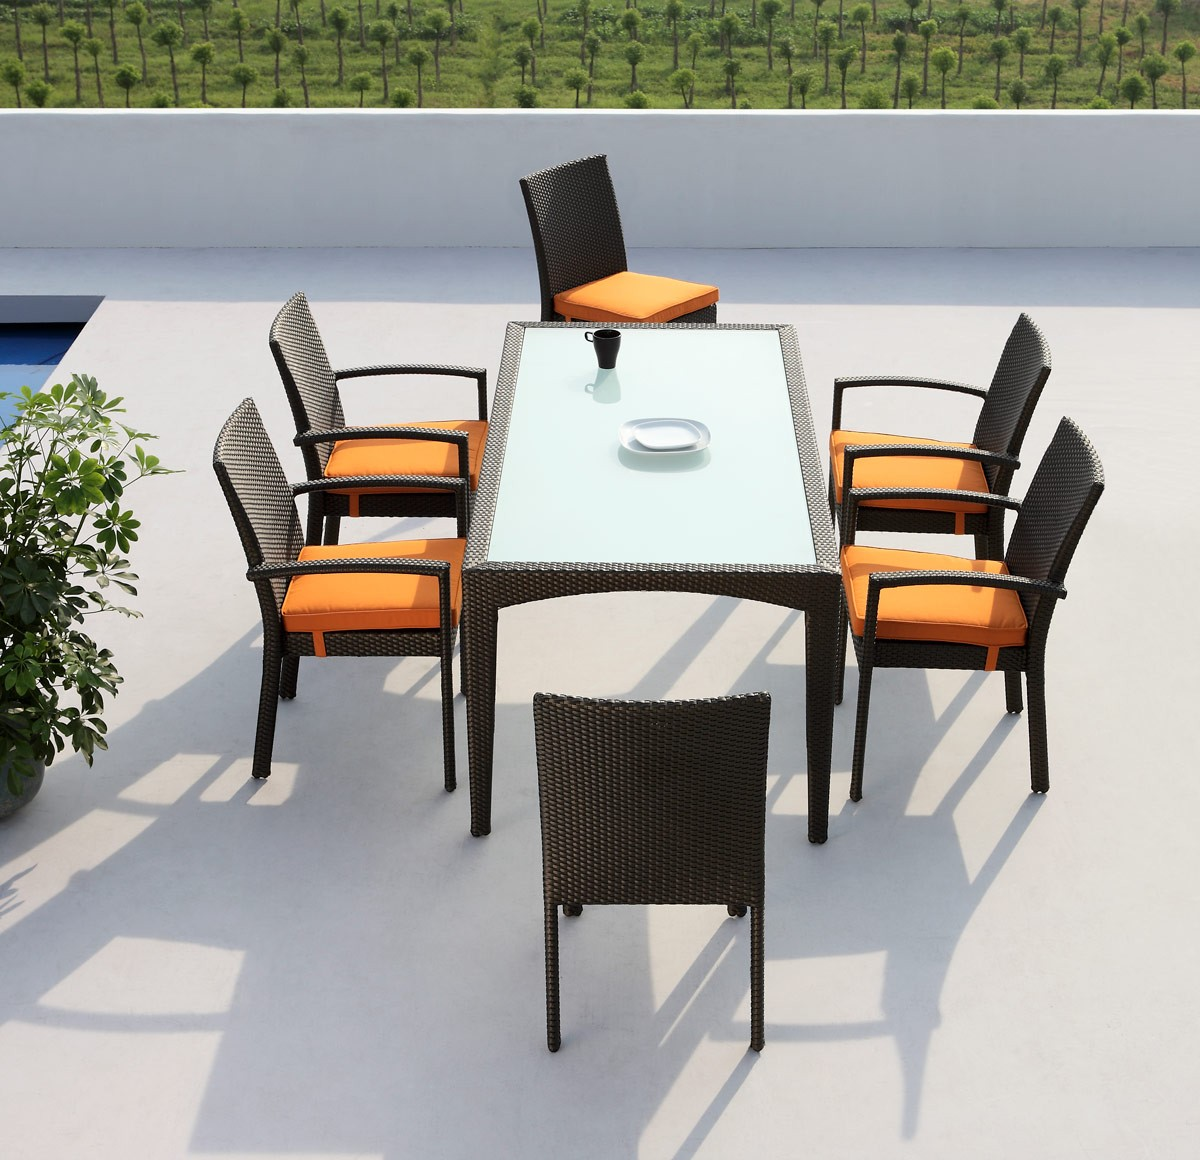 brand new 7 pc outdoor dining set available at AdvancedInteriorDesigns.com